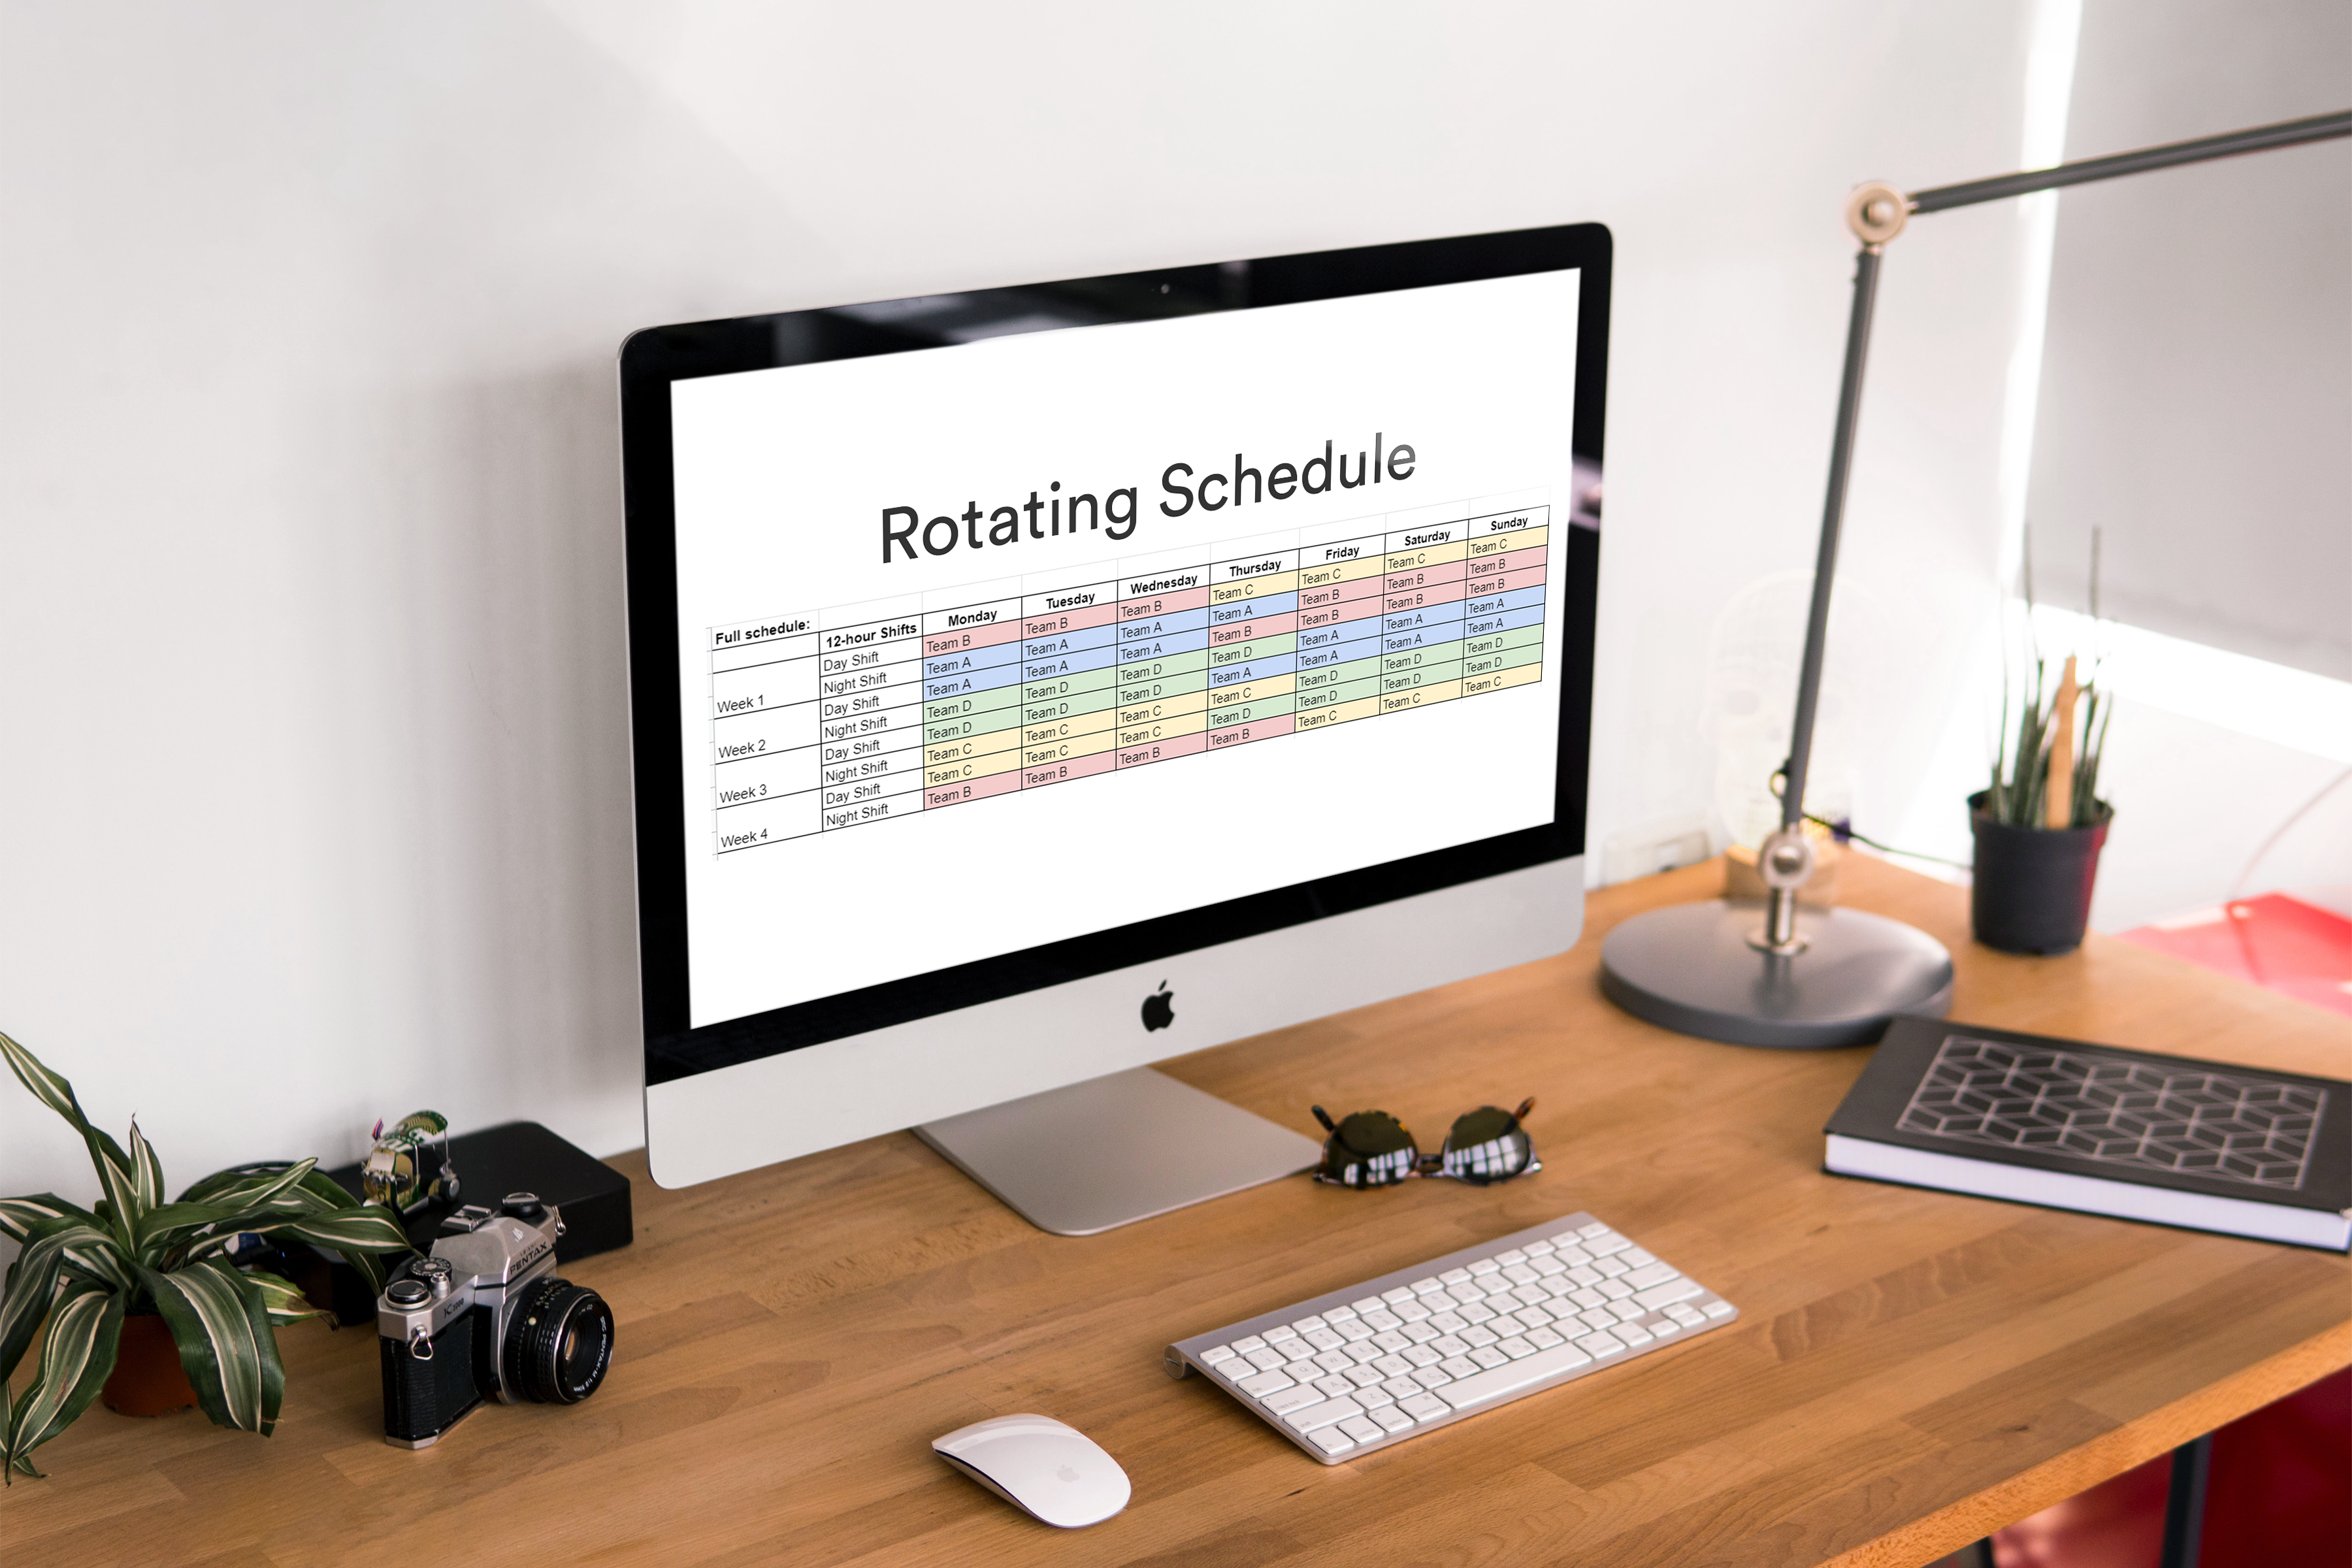 image of rotating schedule on computer screen